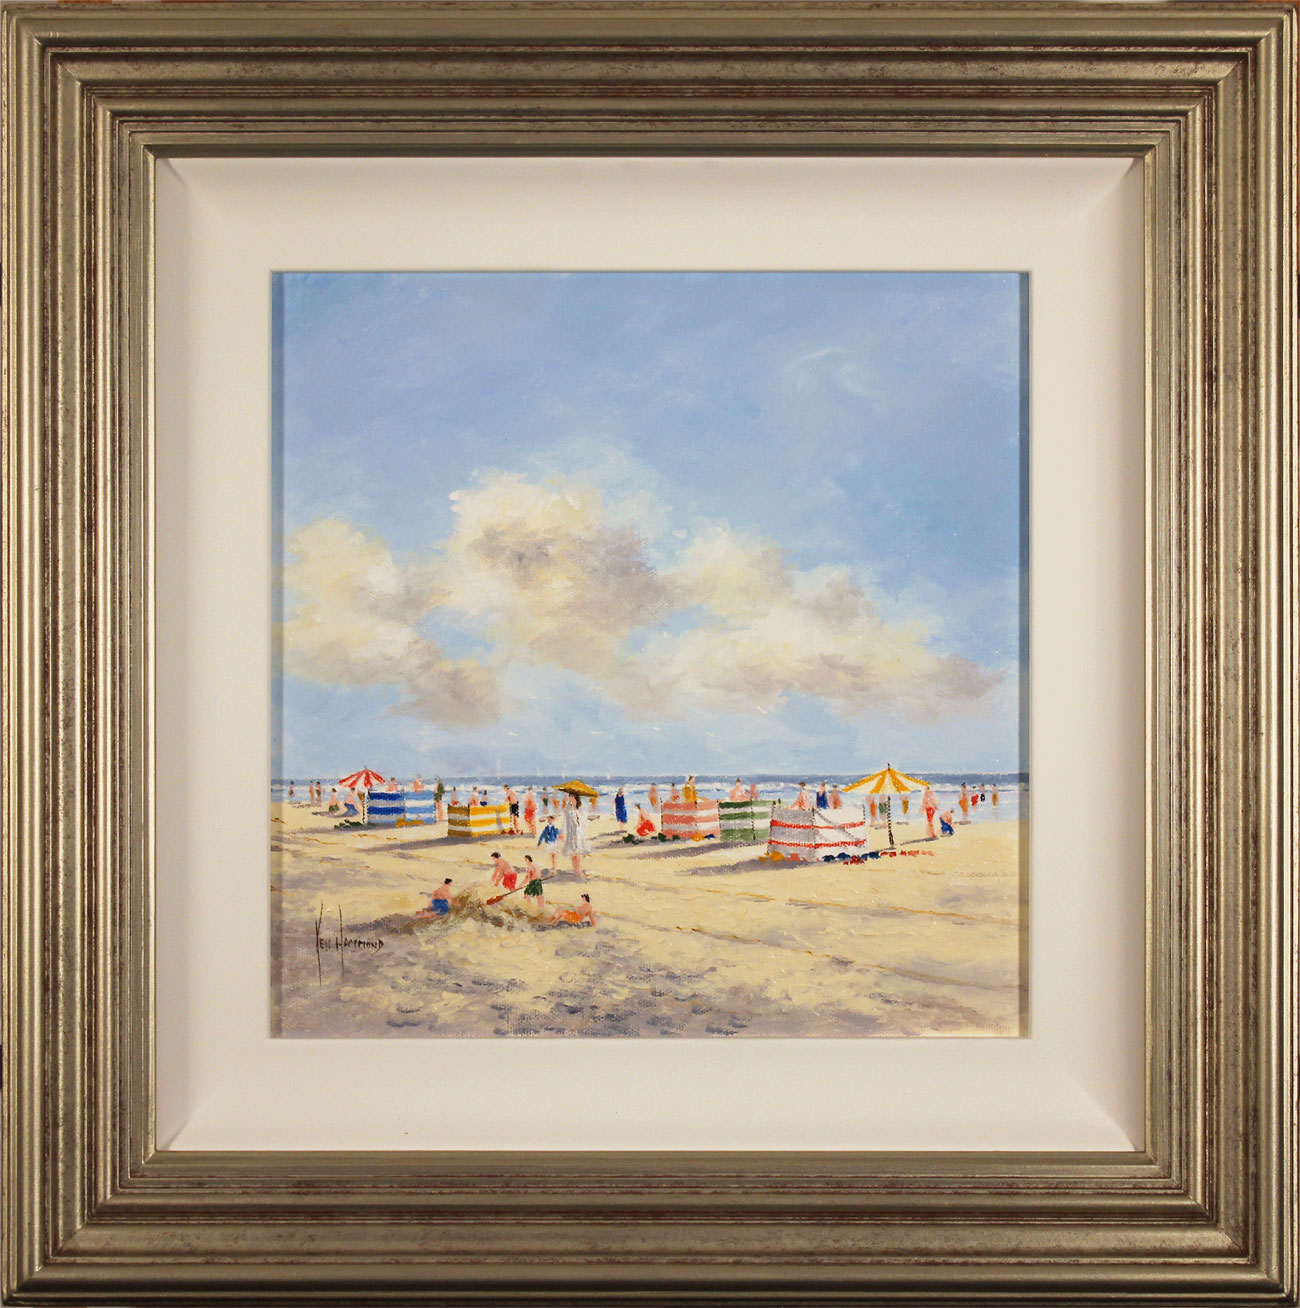 Ken Hammond, Original oil painting on canvas, Summer Sands, click to enlarge